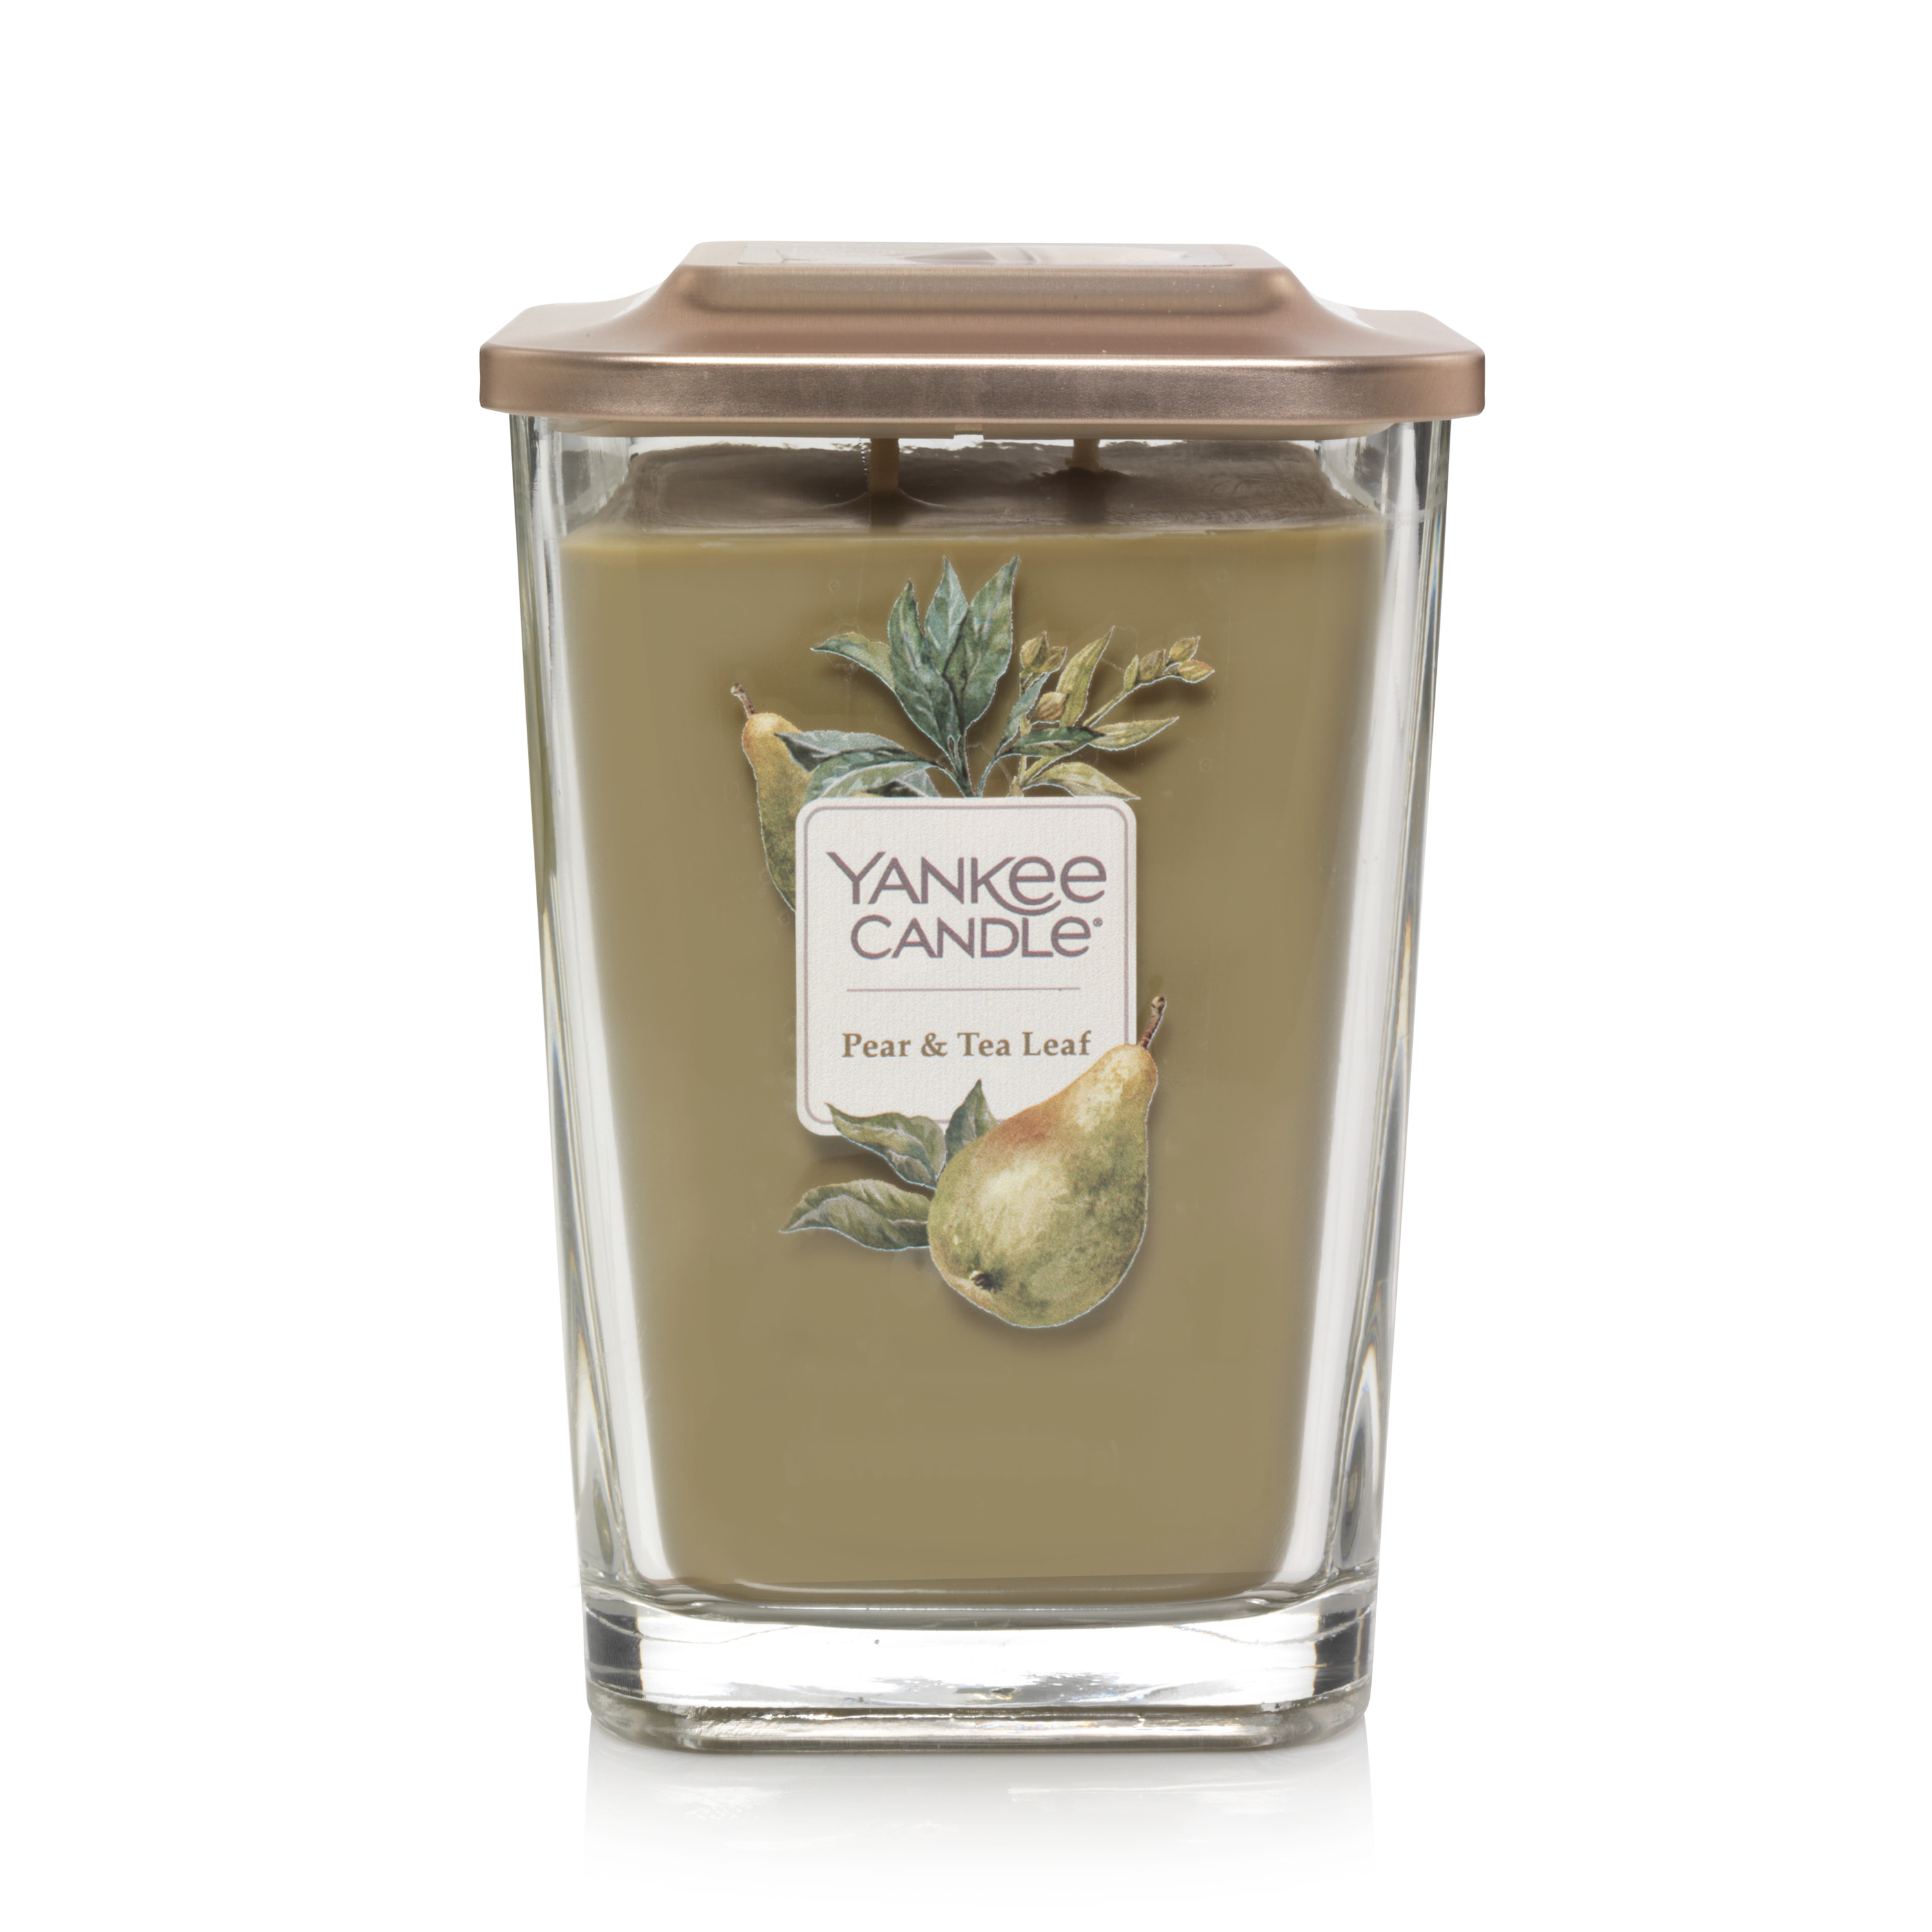 Yankee Candle Elevation Collection with Platform Lid Large 2-Wick Square Candle, Pear & Tea Leaf